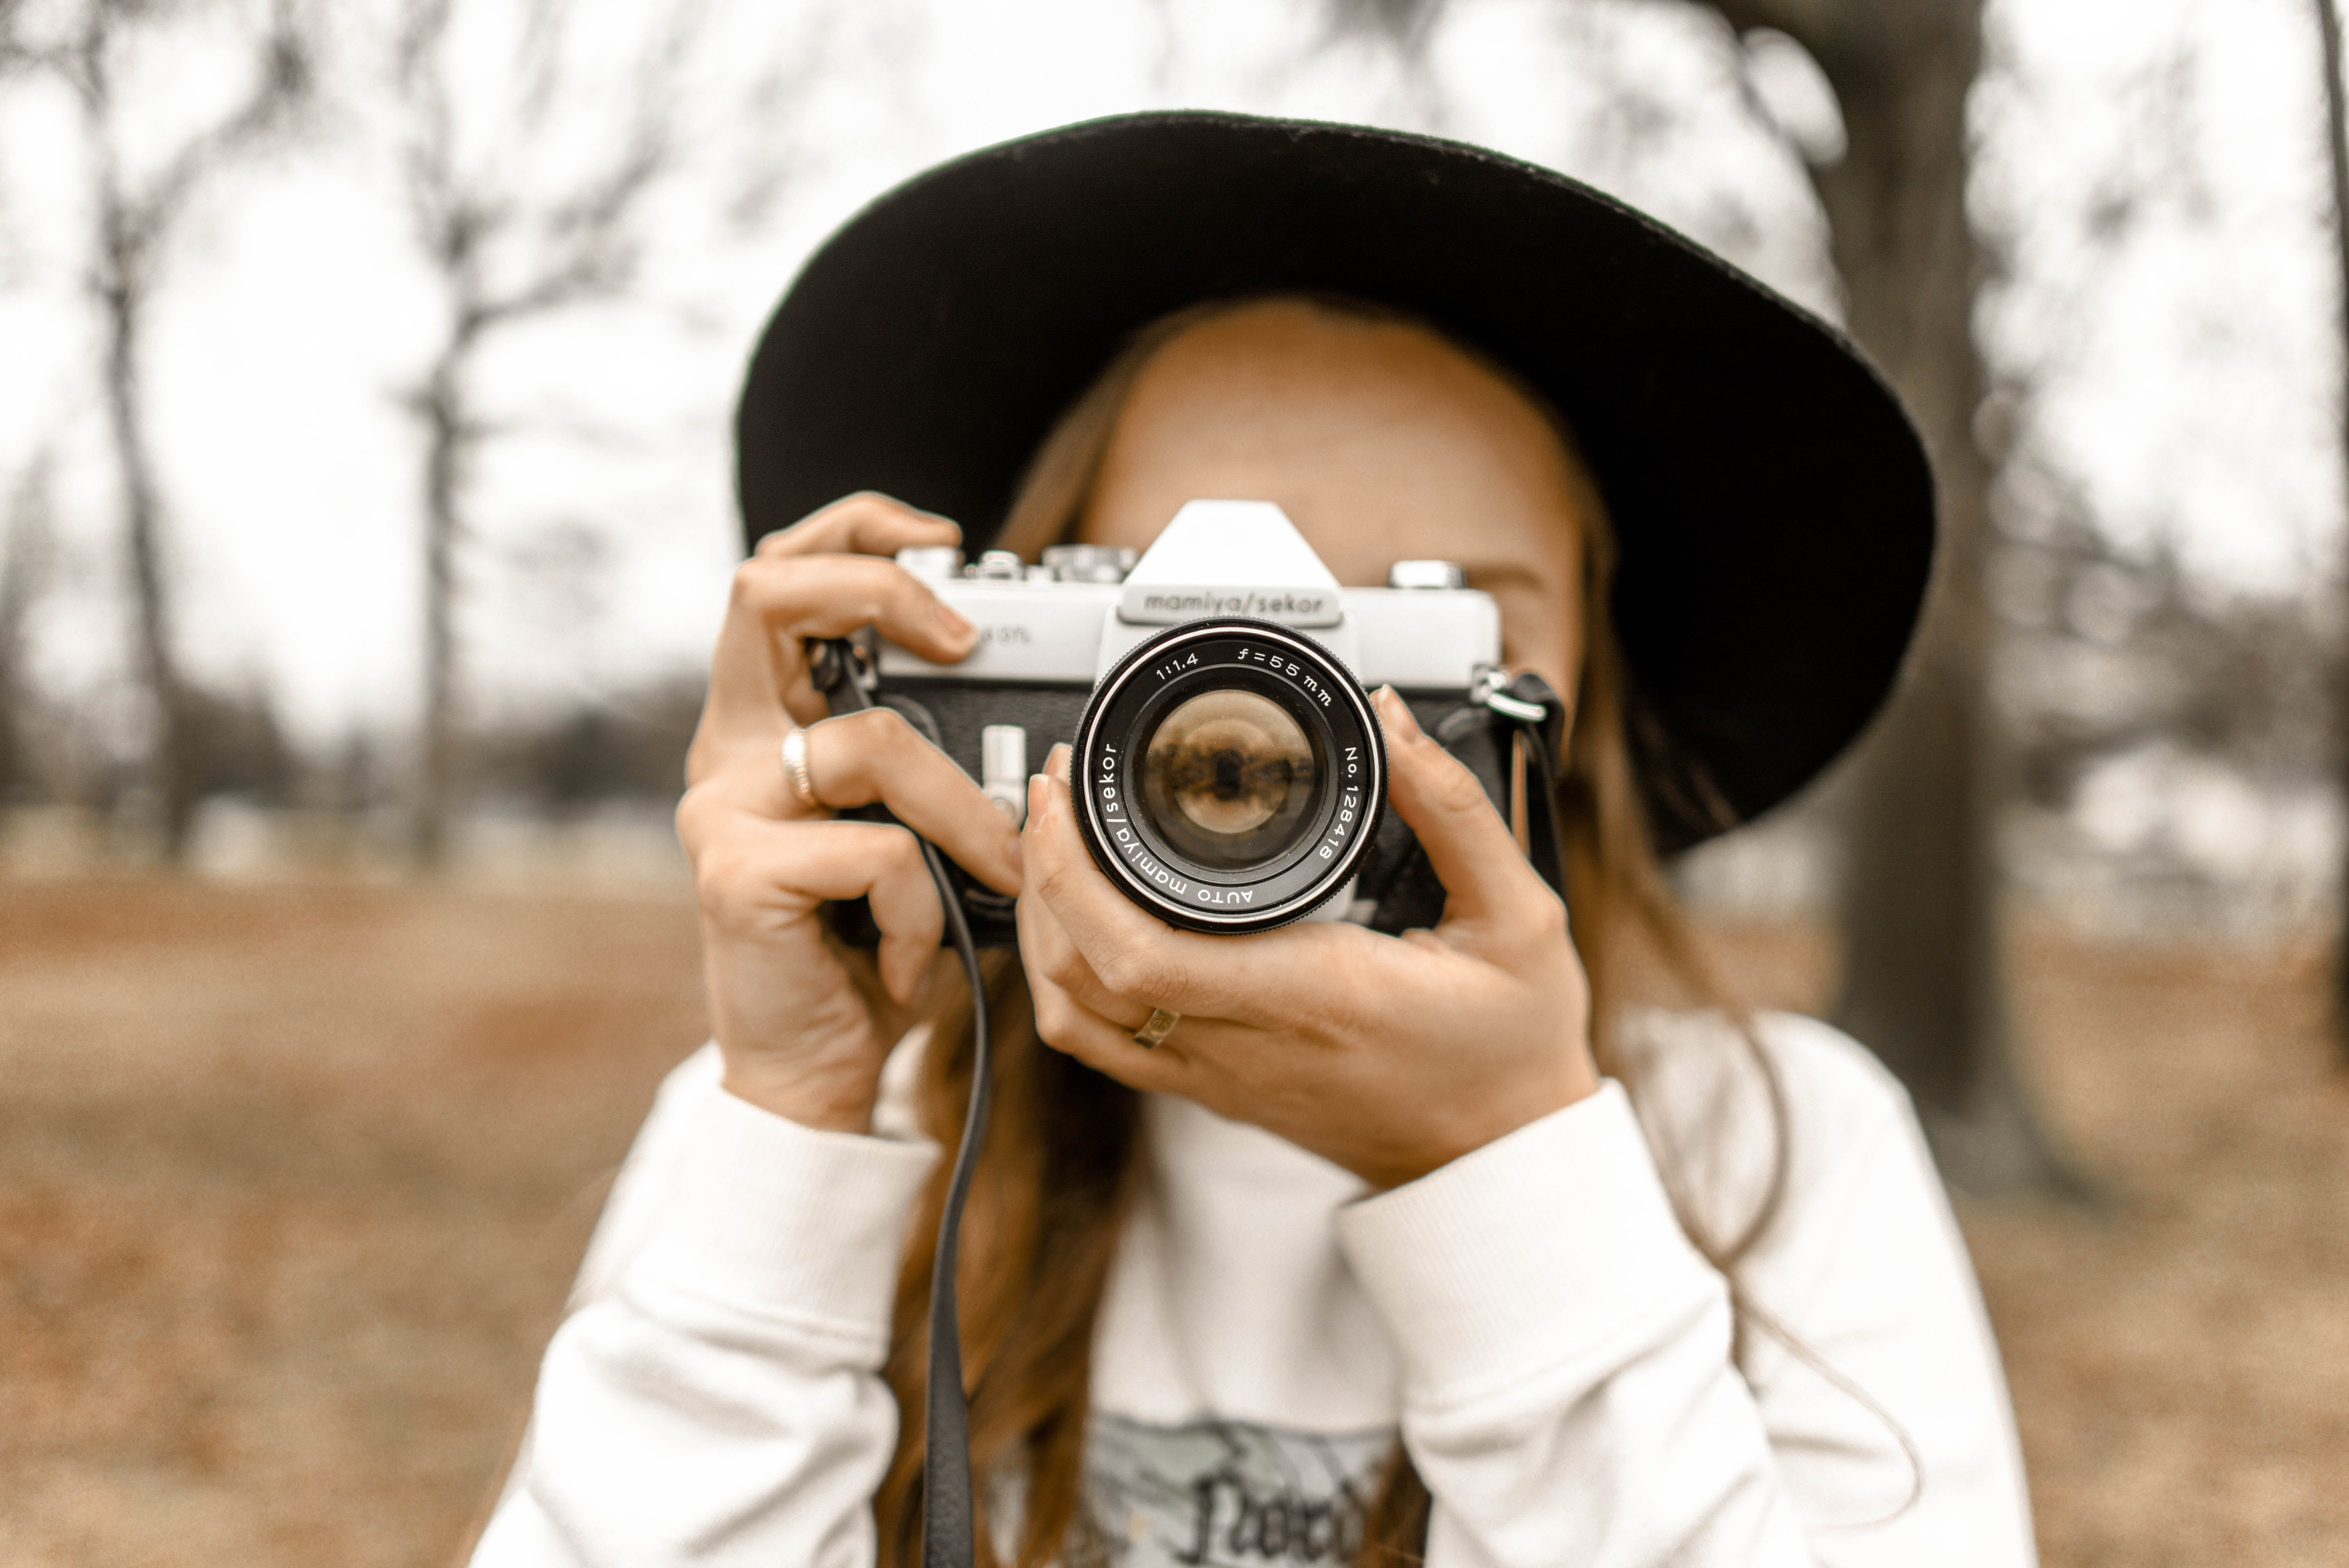 Selective Focus Photography of Woman Using White and Black Slr Camera